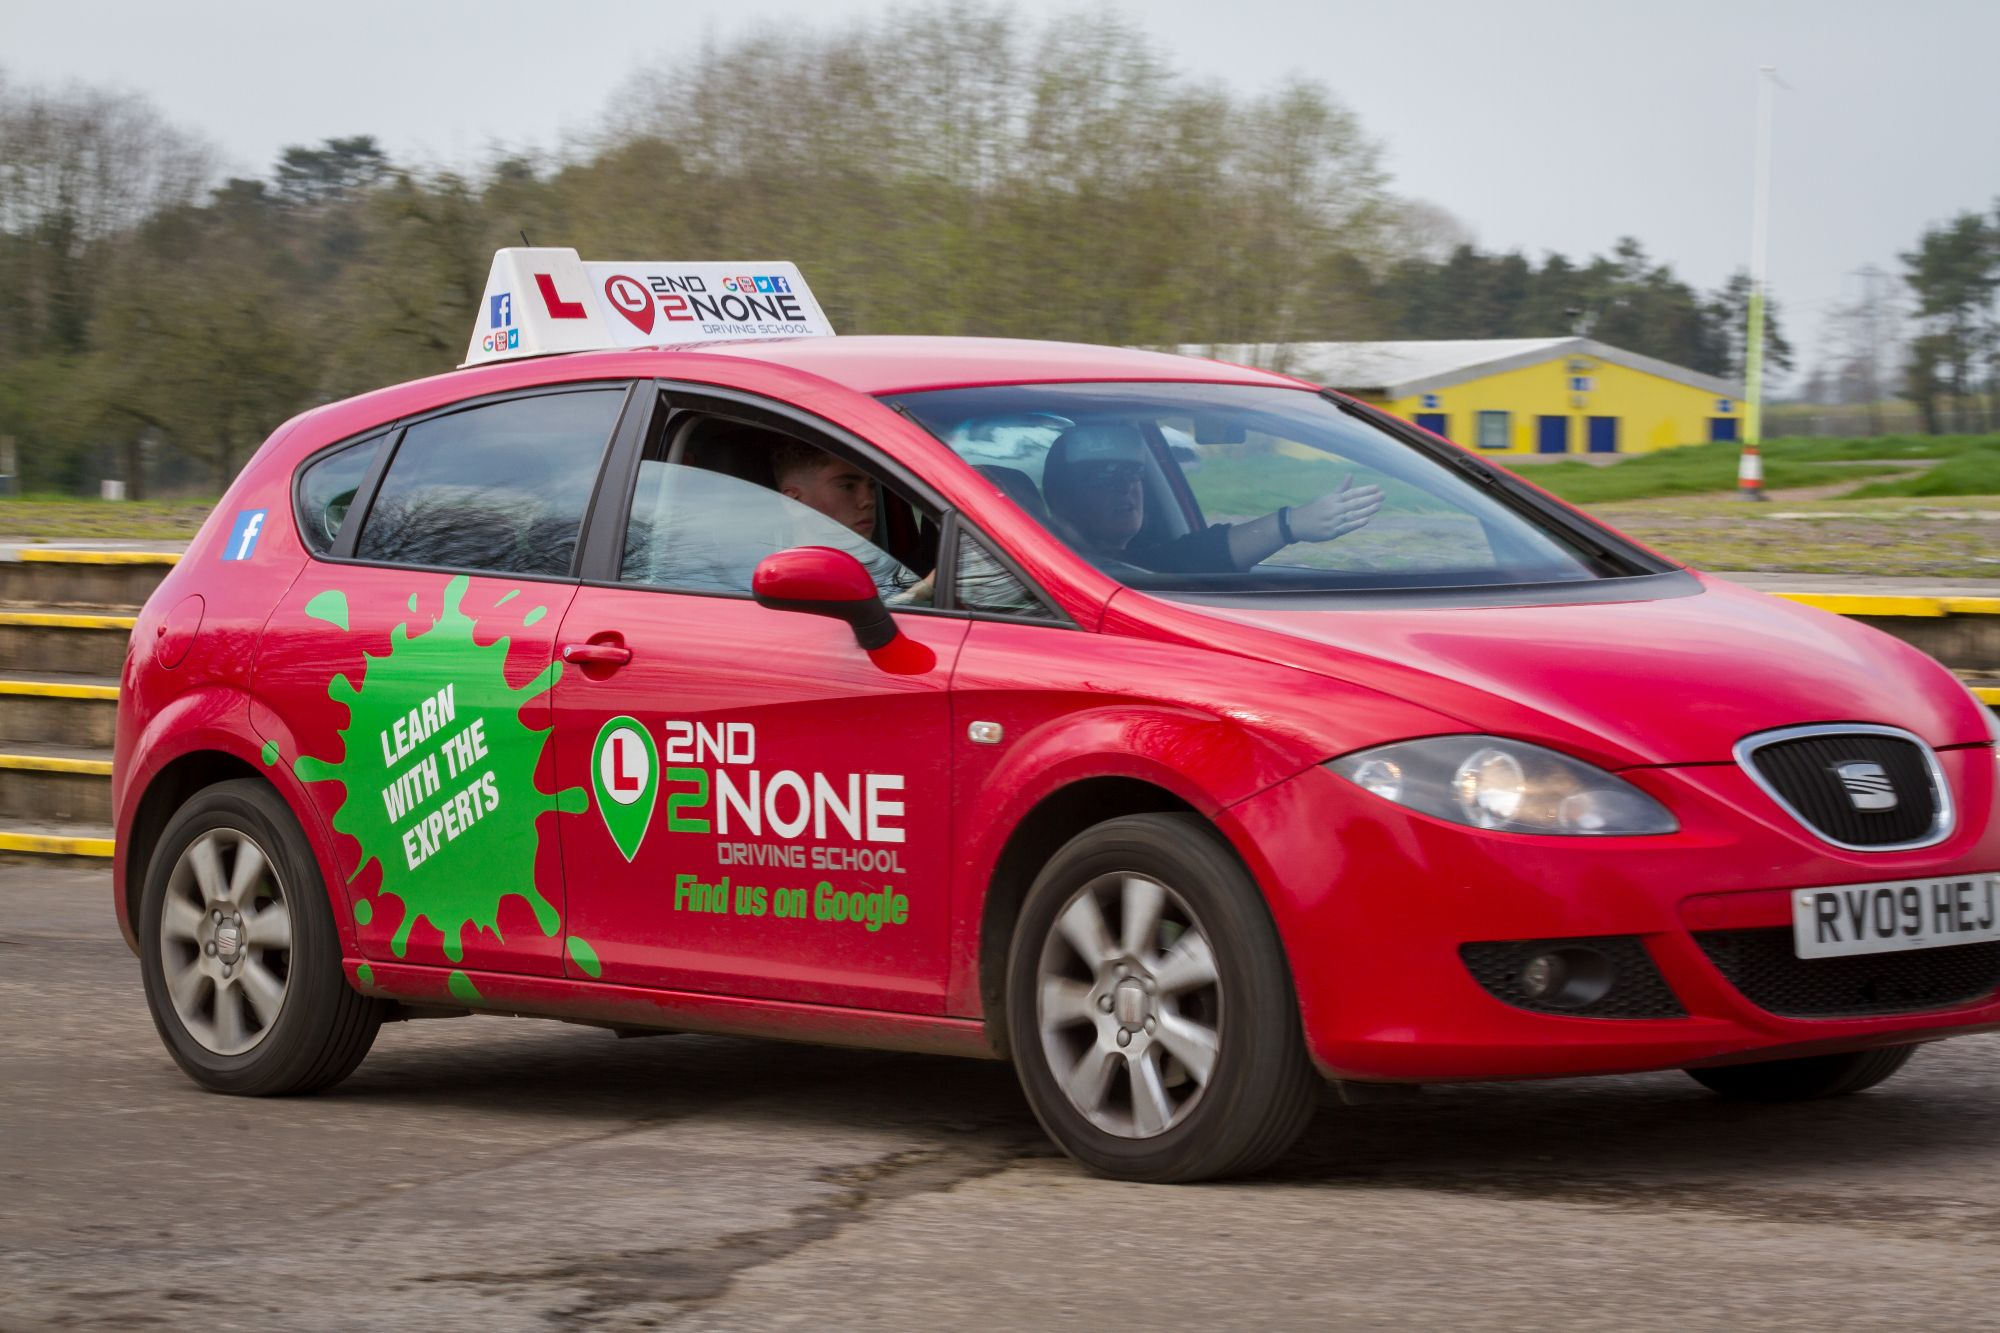 Under 17's Driving Lessons Shepton Mallet